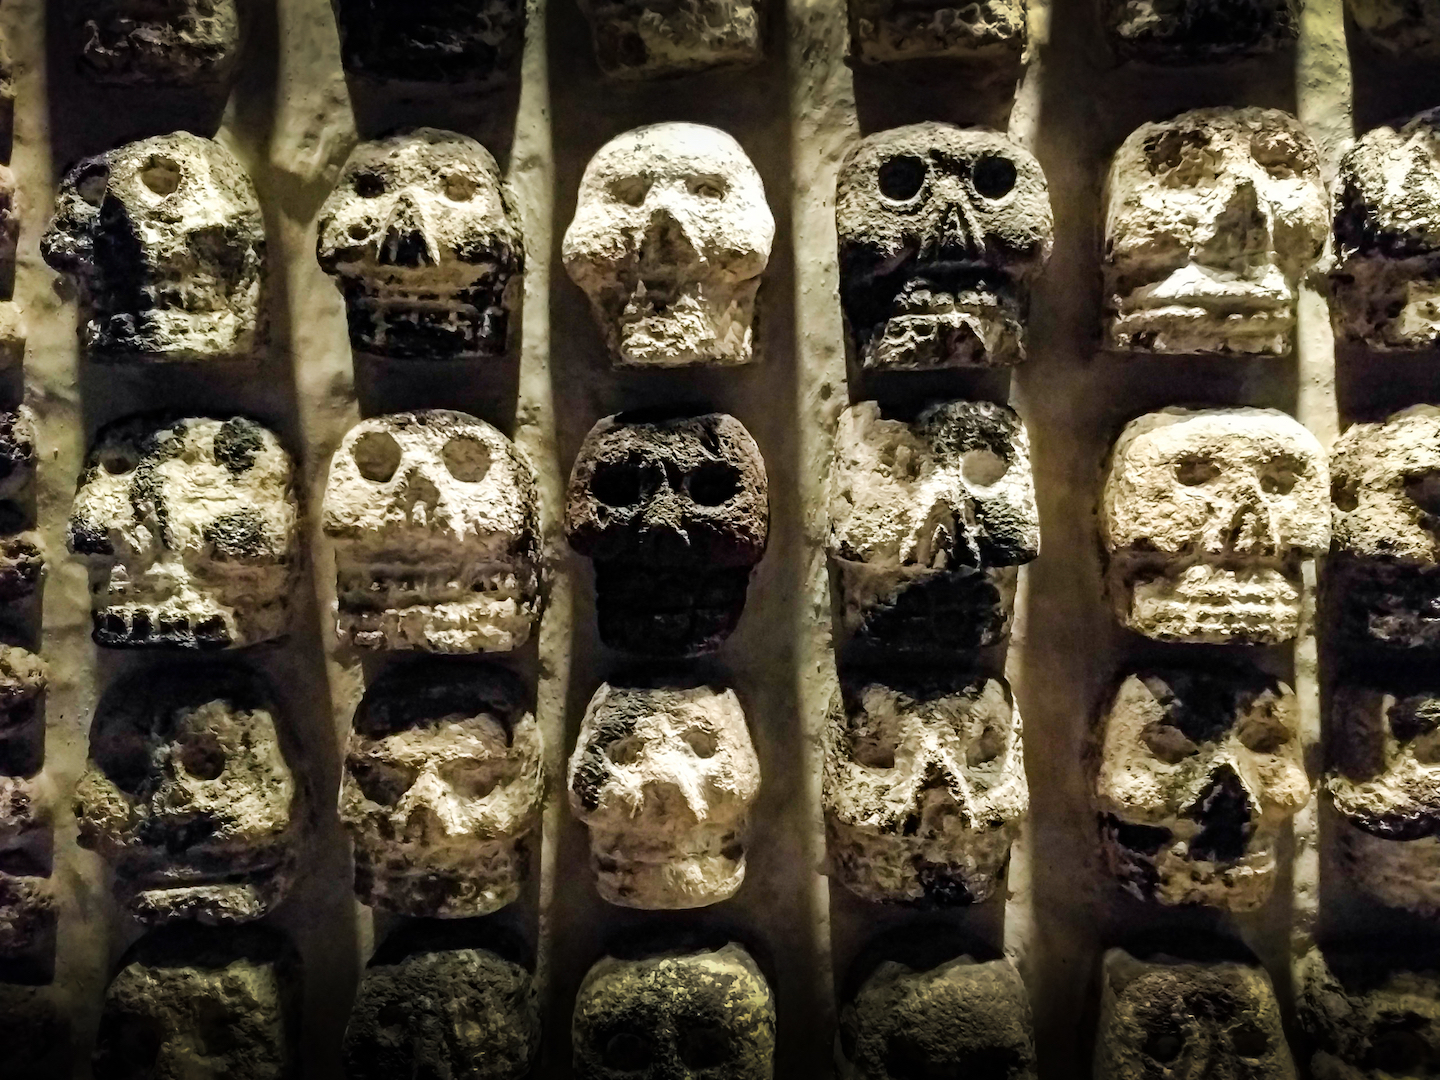 A stone wall with skull carvings found at the Templo Mayor in Zocalo, Mexico City.